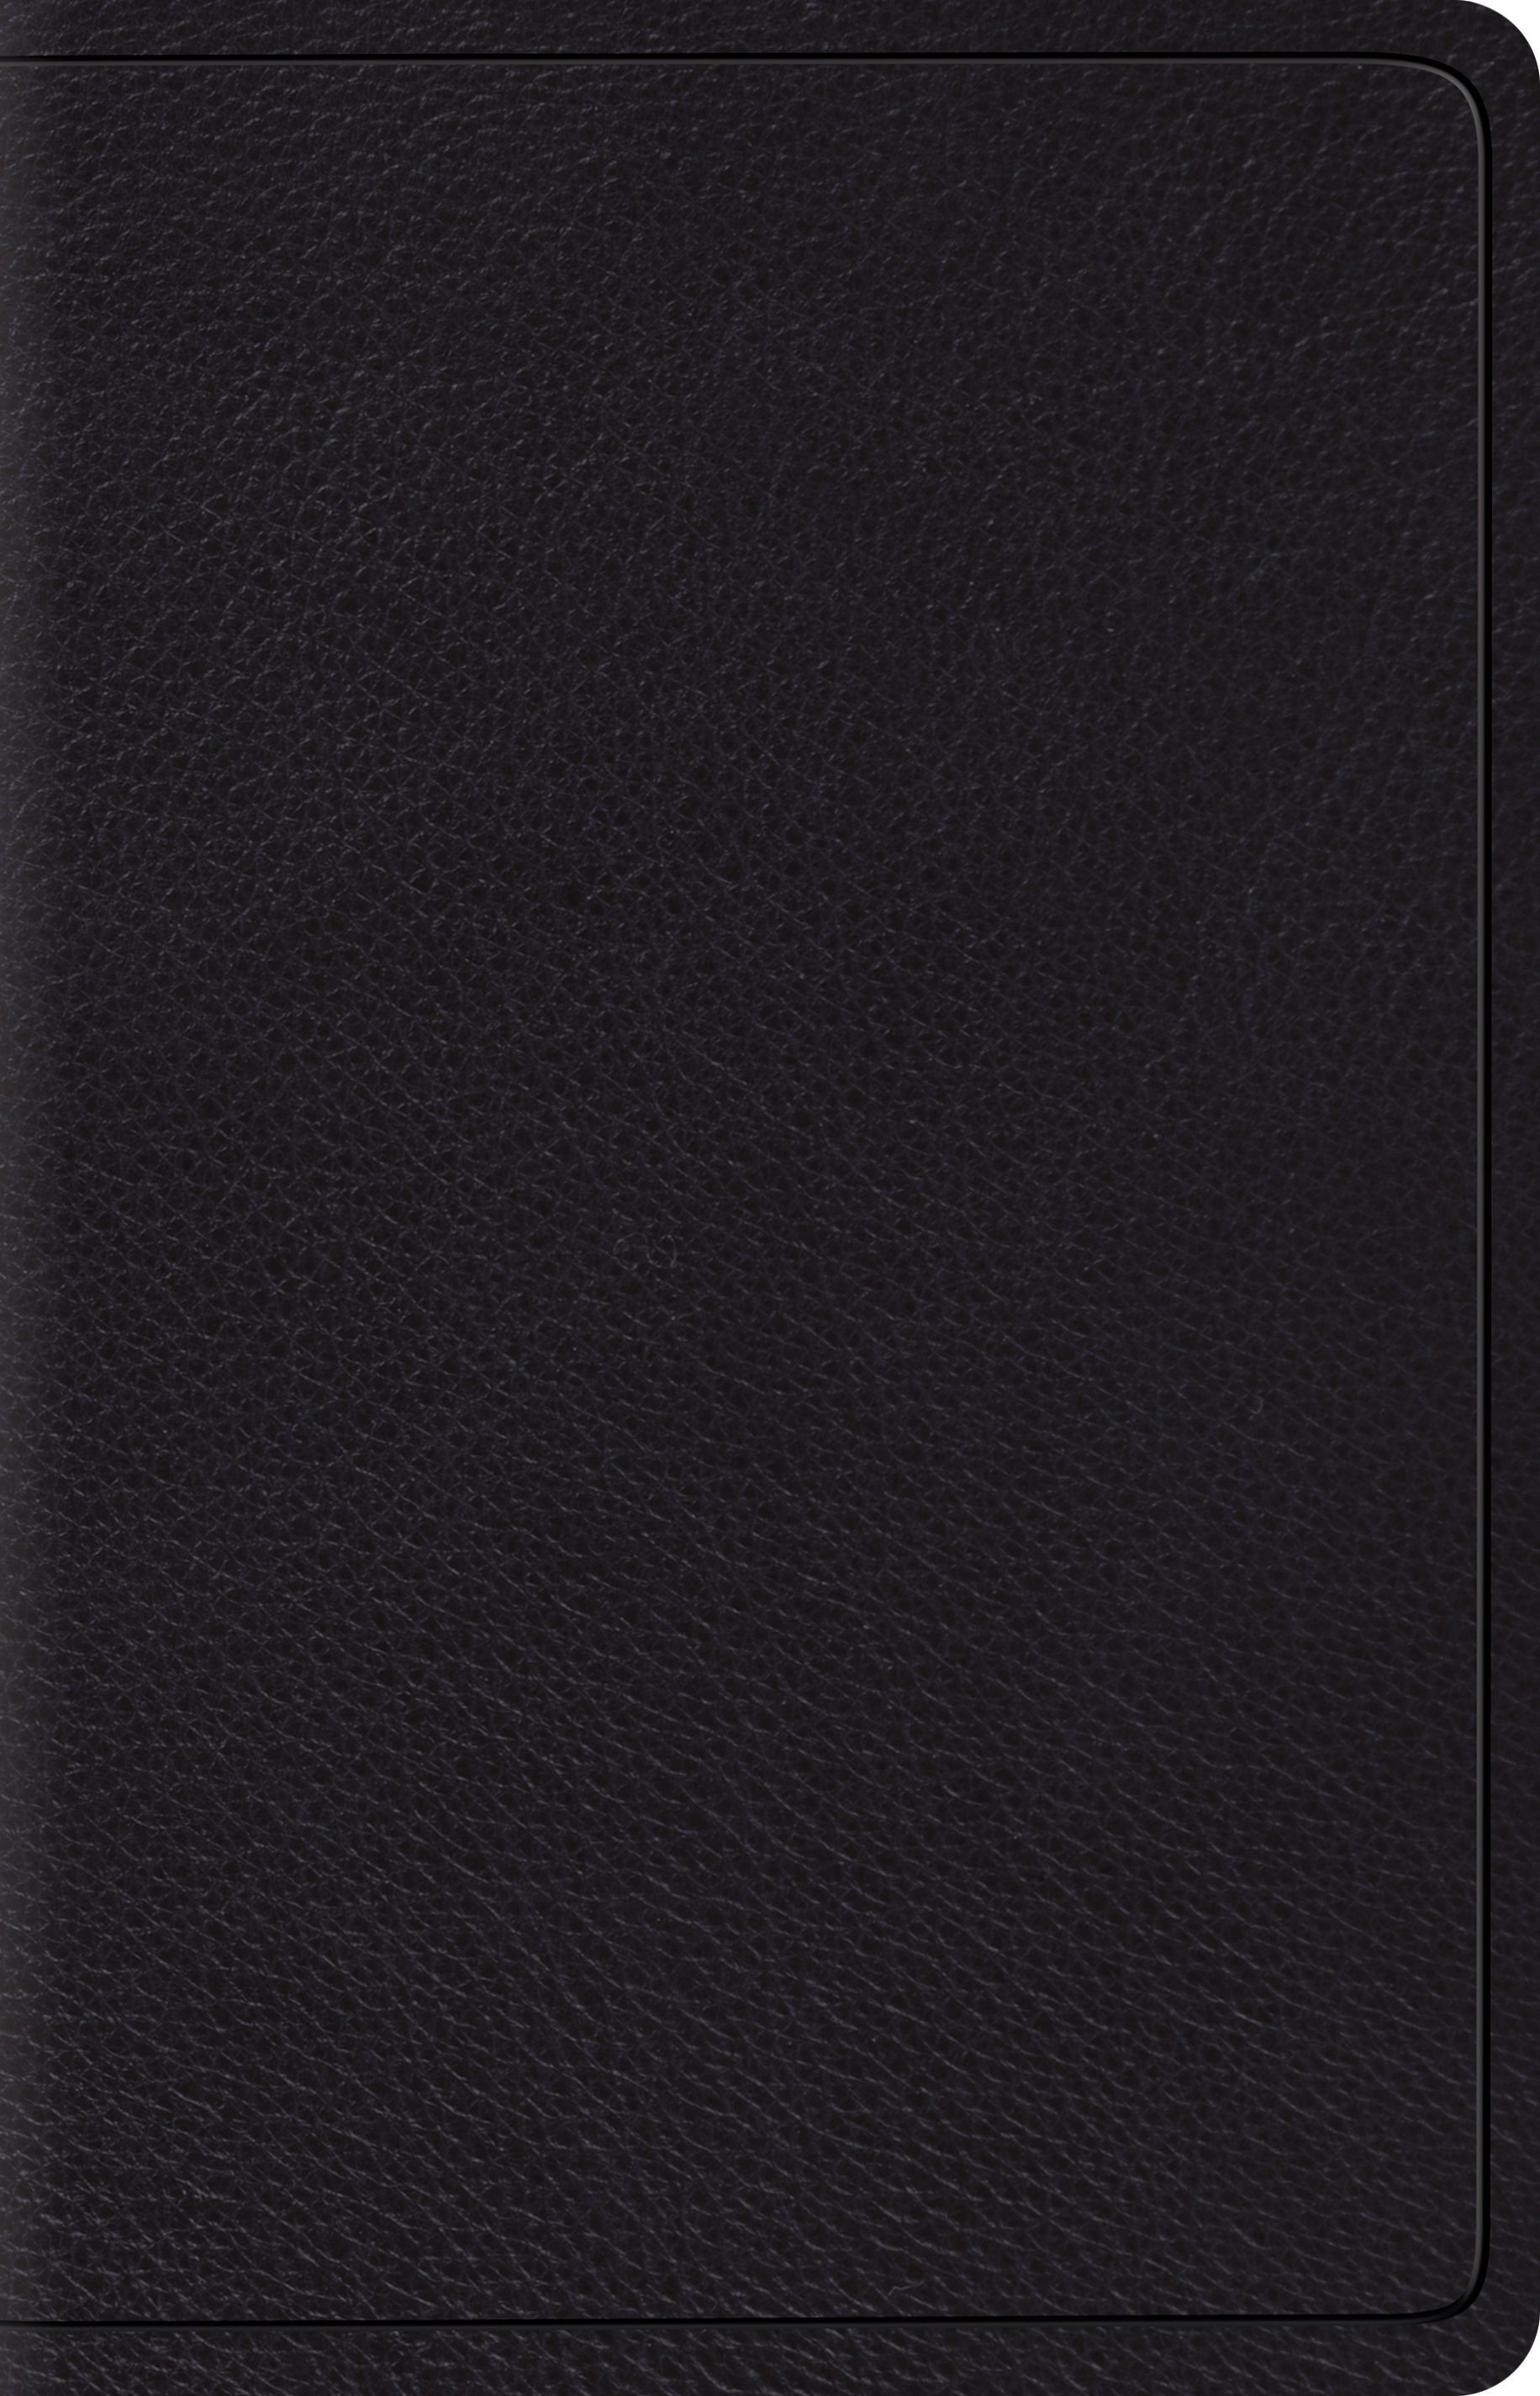 ESV Wide Margin Reference Bible (Black) (Esv Bibles)